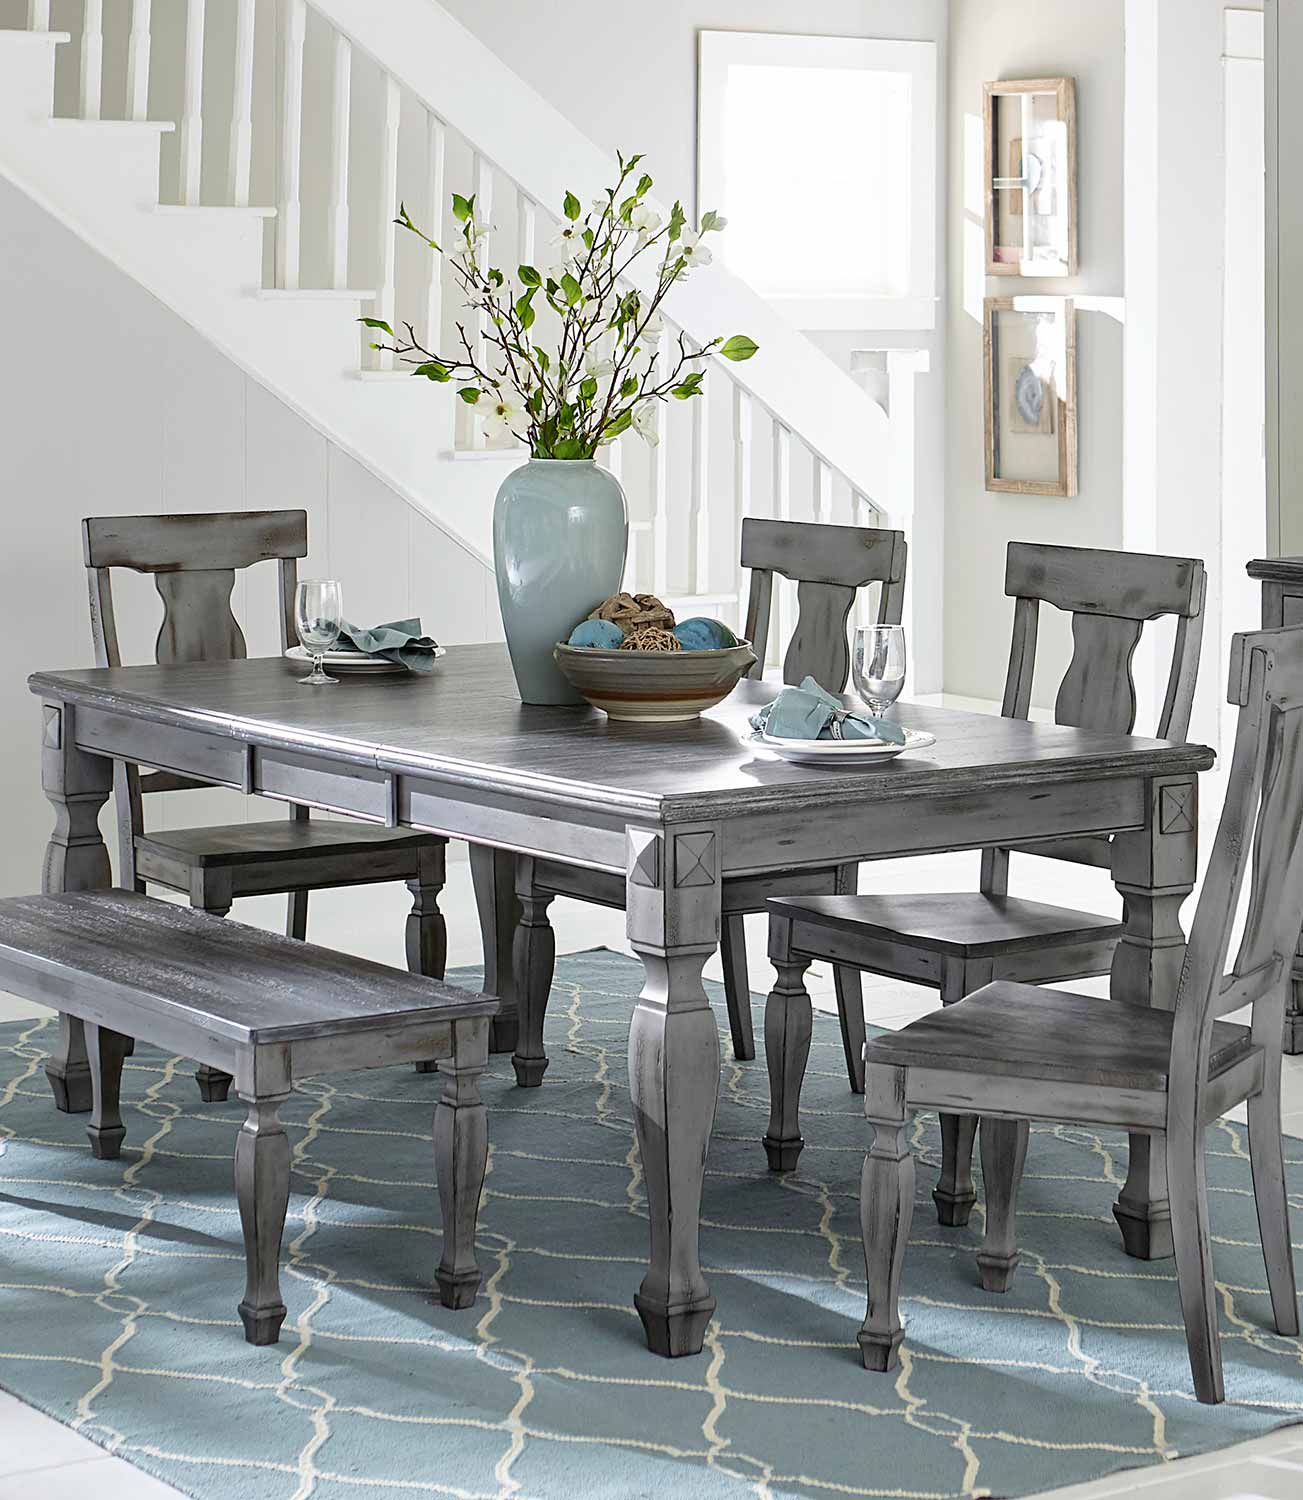 Picture of: Homelegance Fulbright Rectangular Dining Table With Butterfly Leaf Weathered Gray Rub Through Finish 5520 78 At Homelement Com